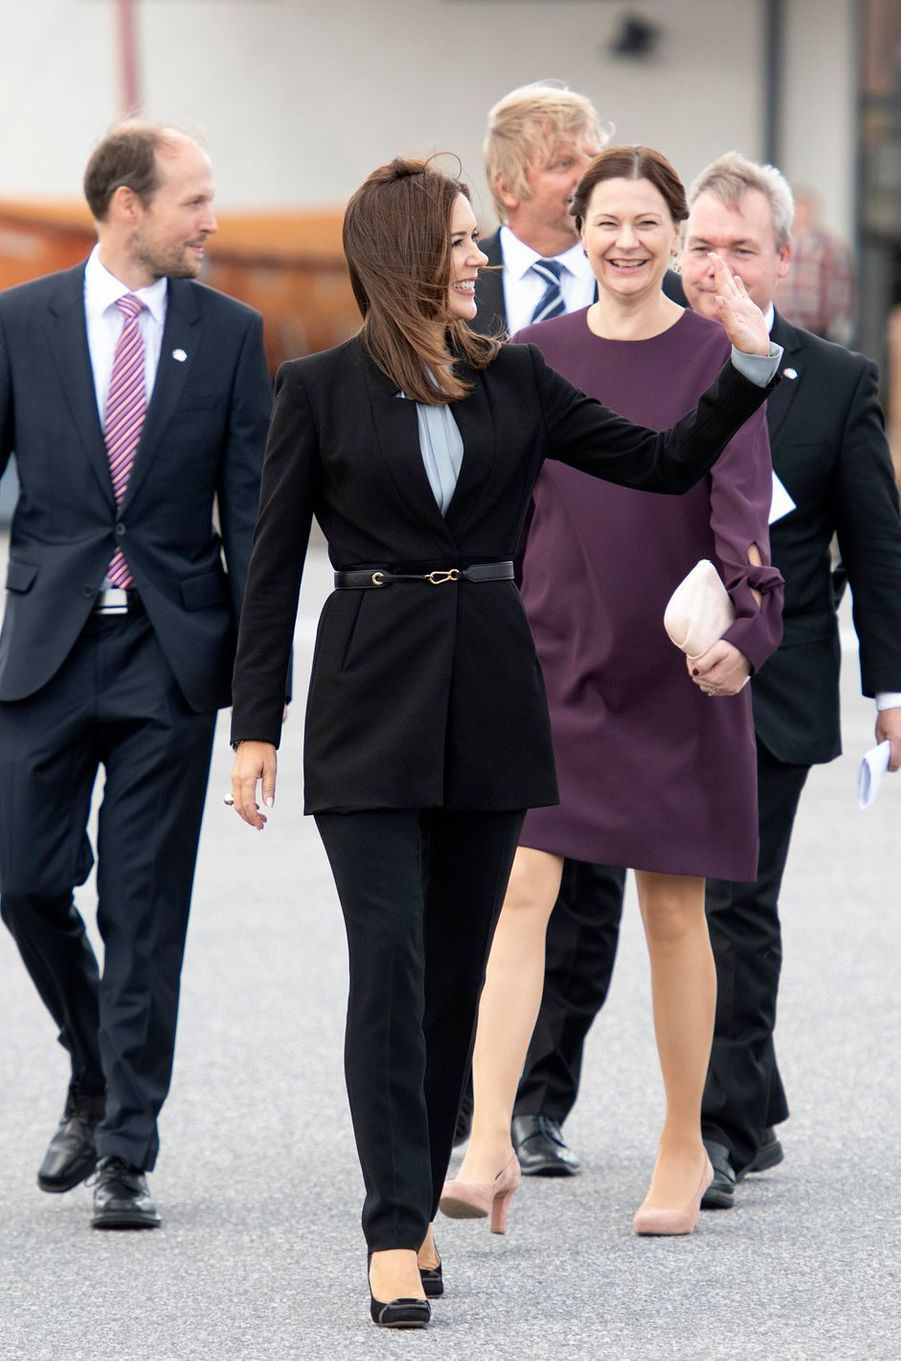 La princesse Mary de Danemark à Turku, le 14 septembre 2018